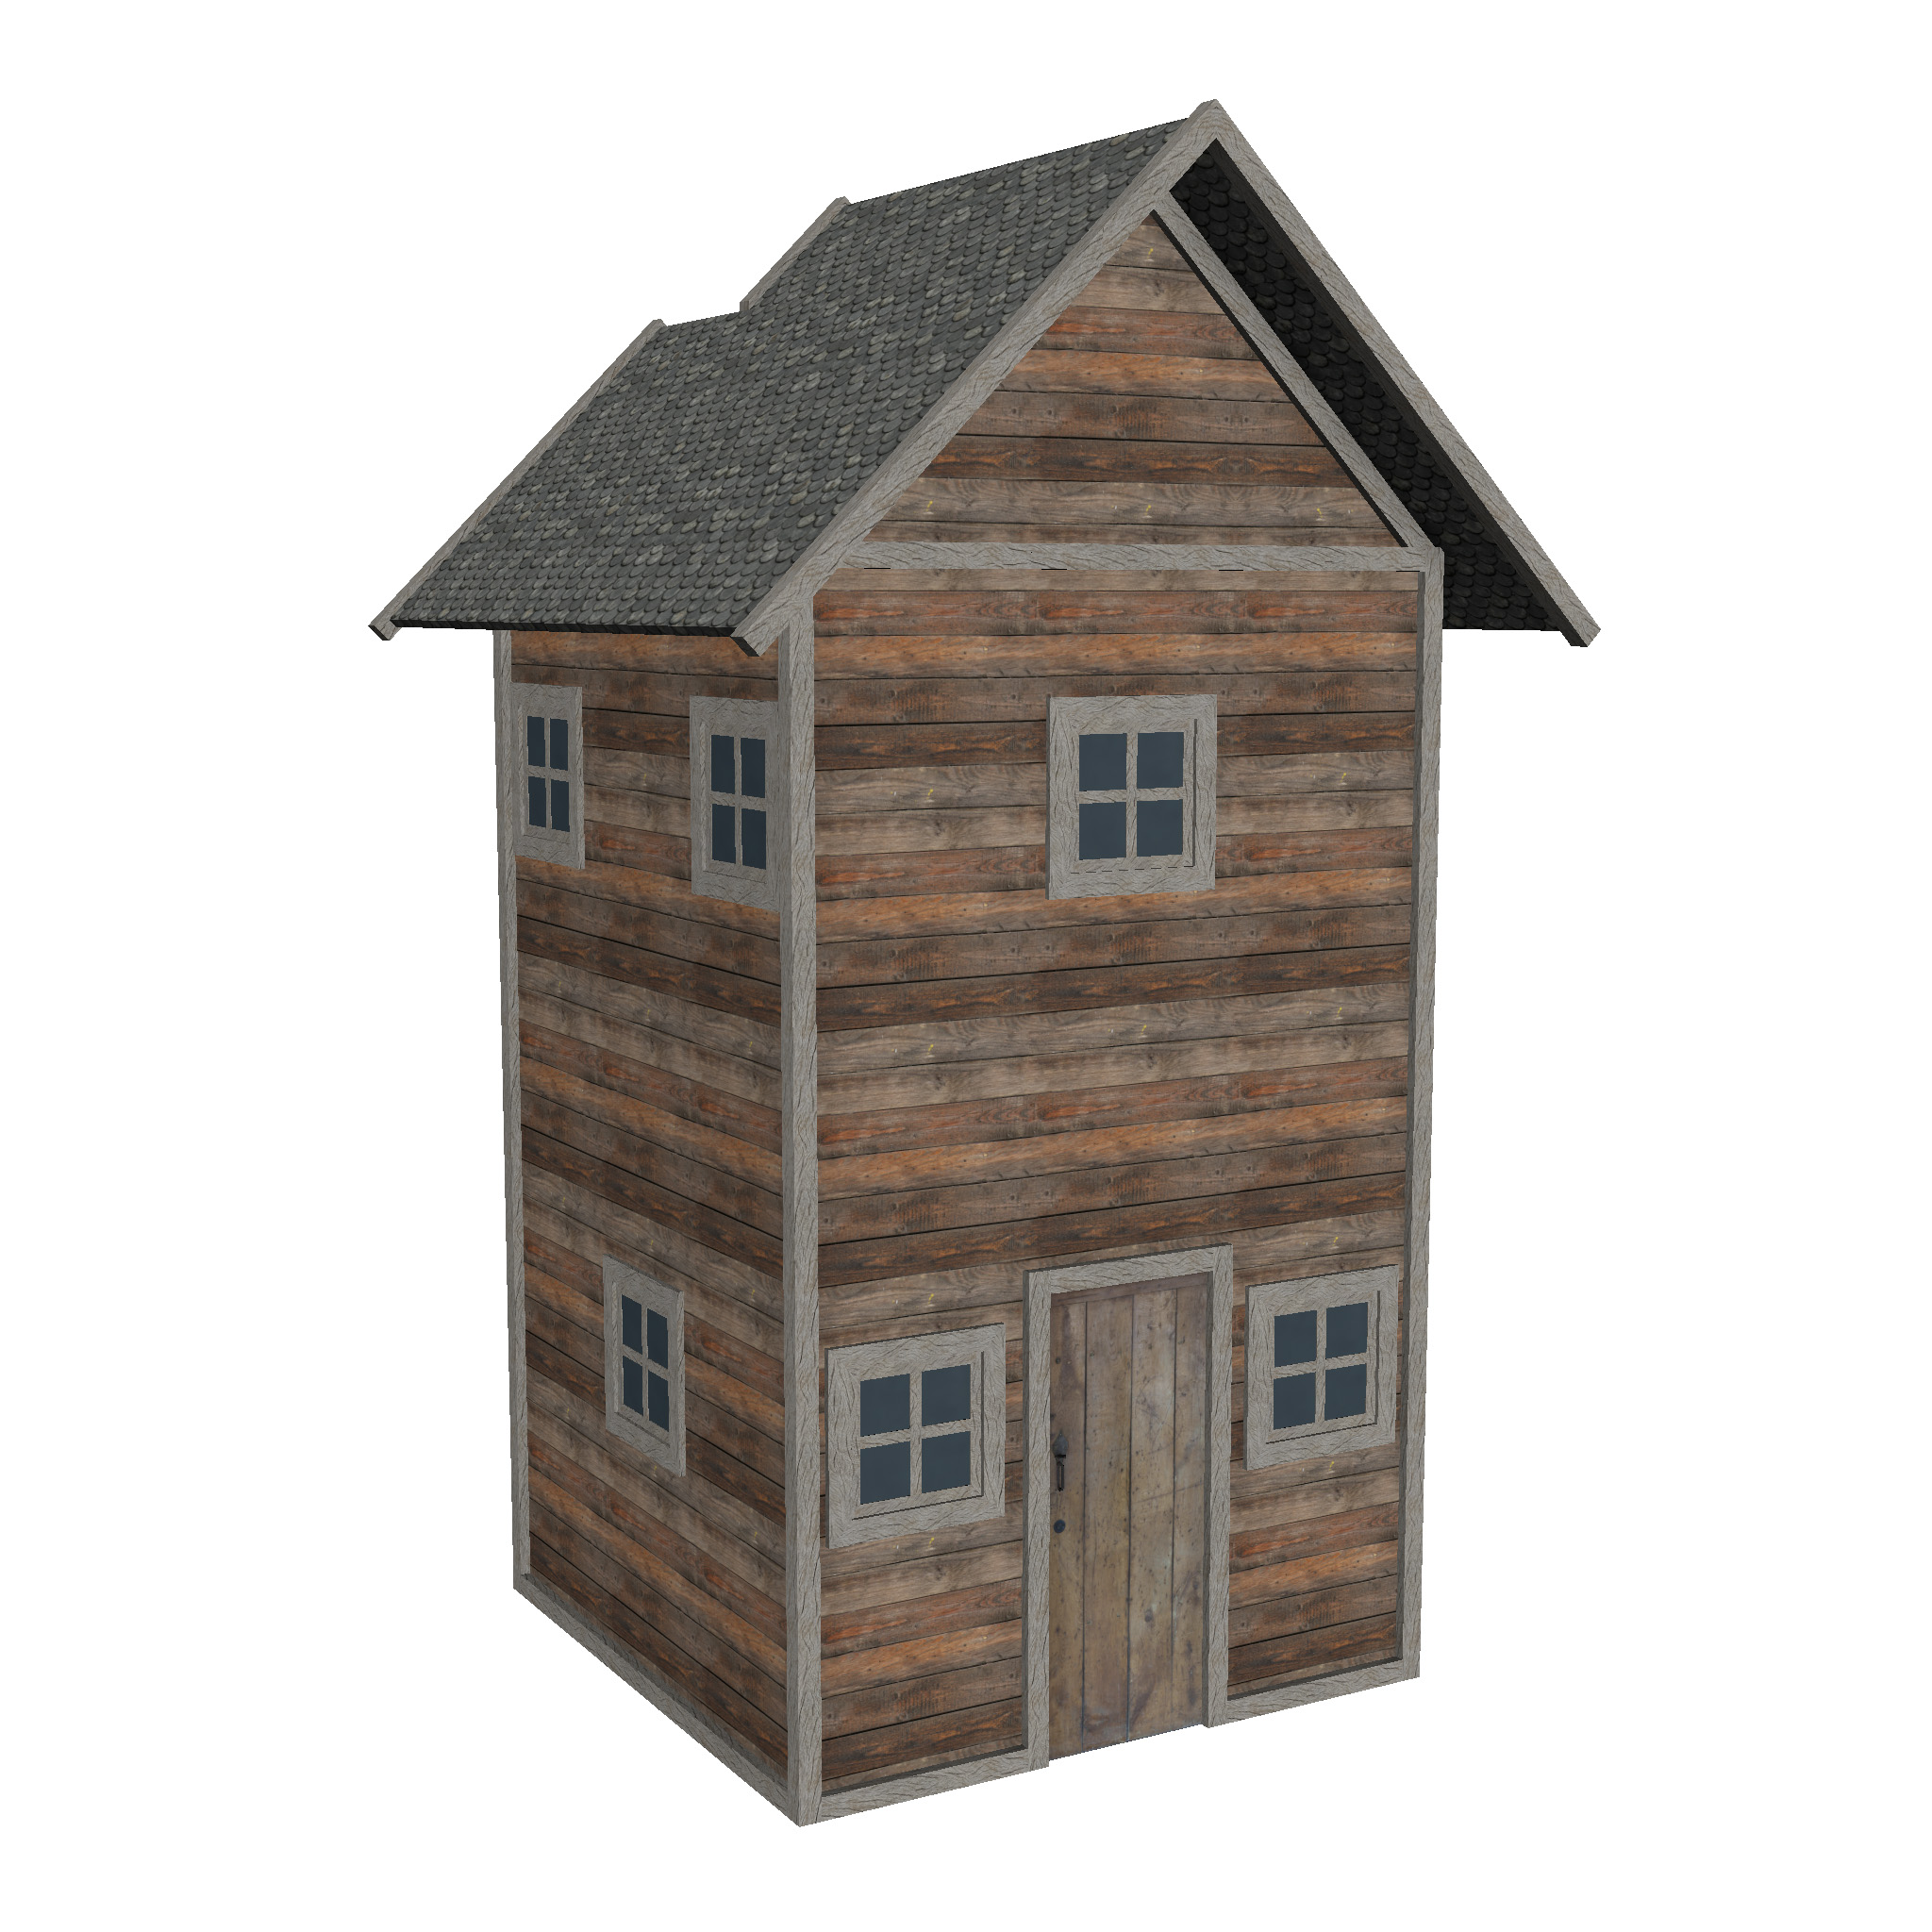 modular wood house set 3d model fbx ma mb 271431